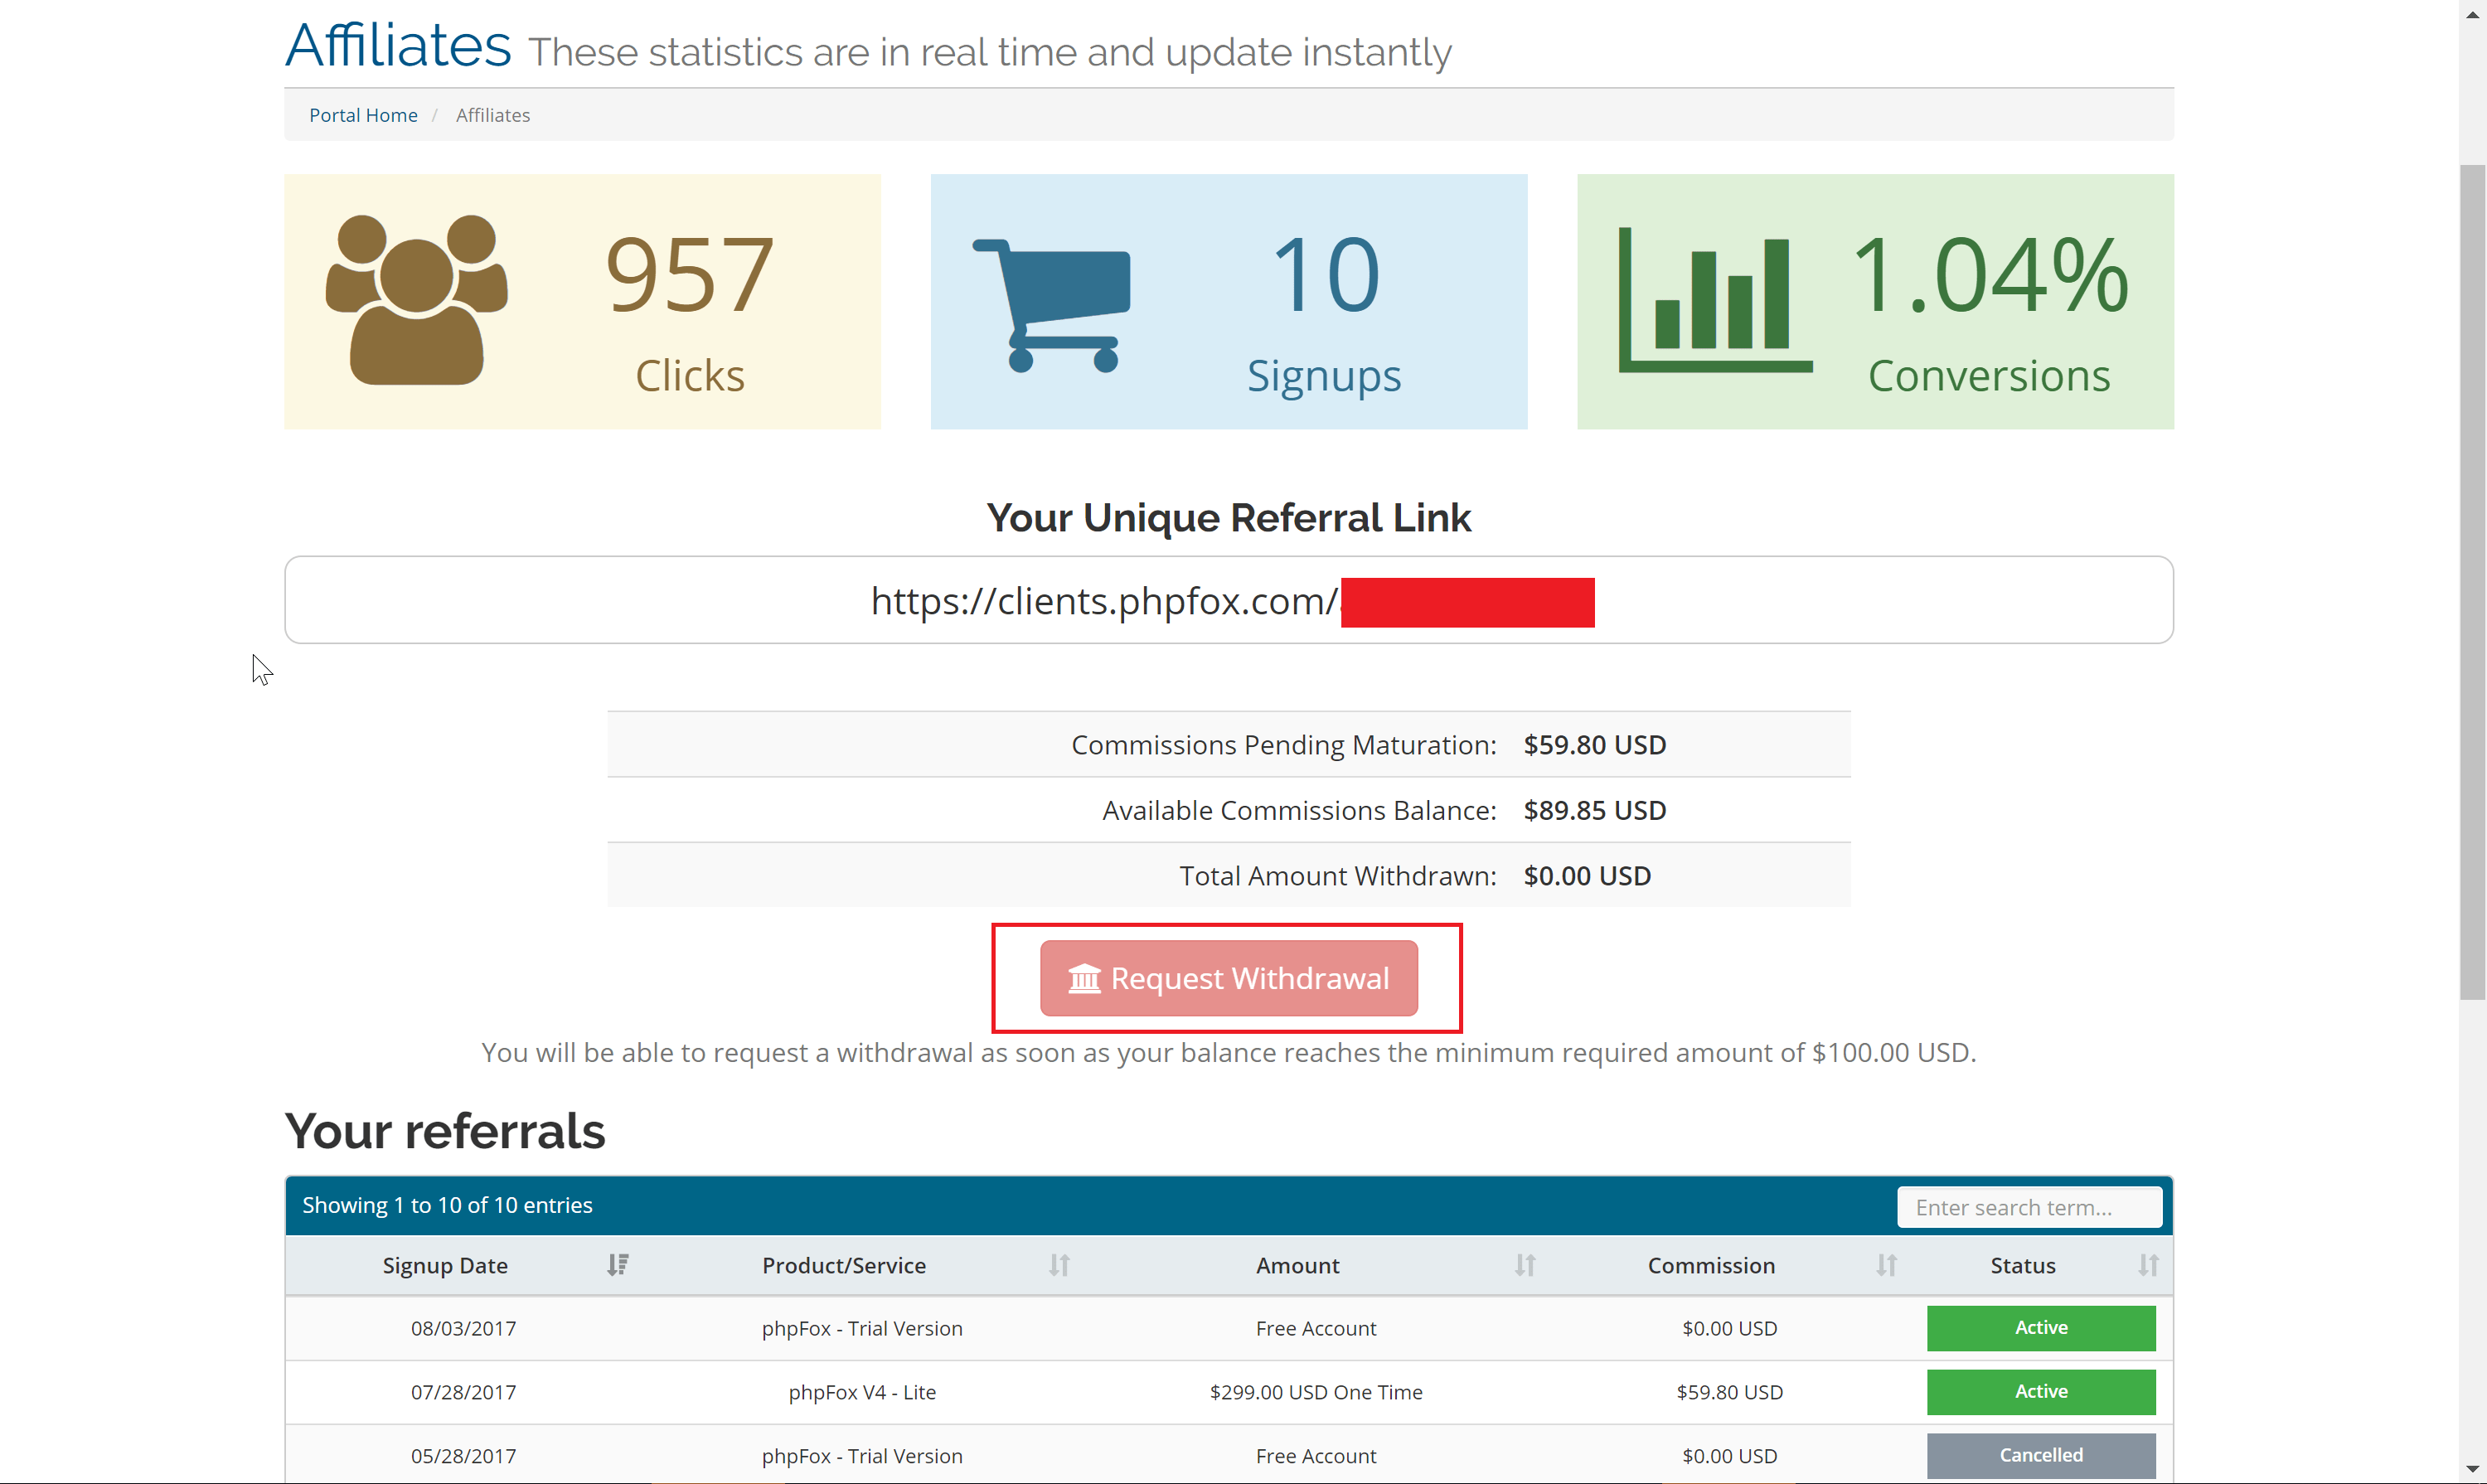 Request Withdrawal